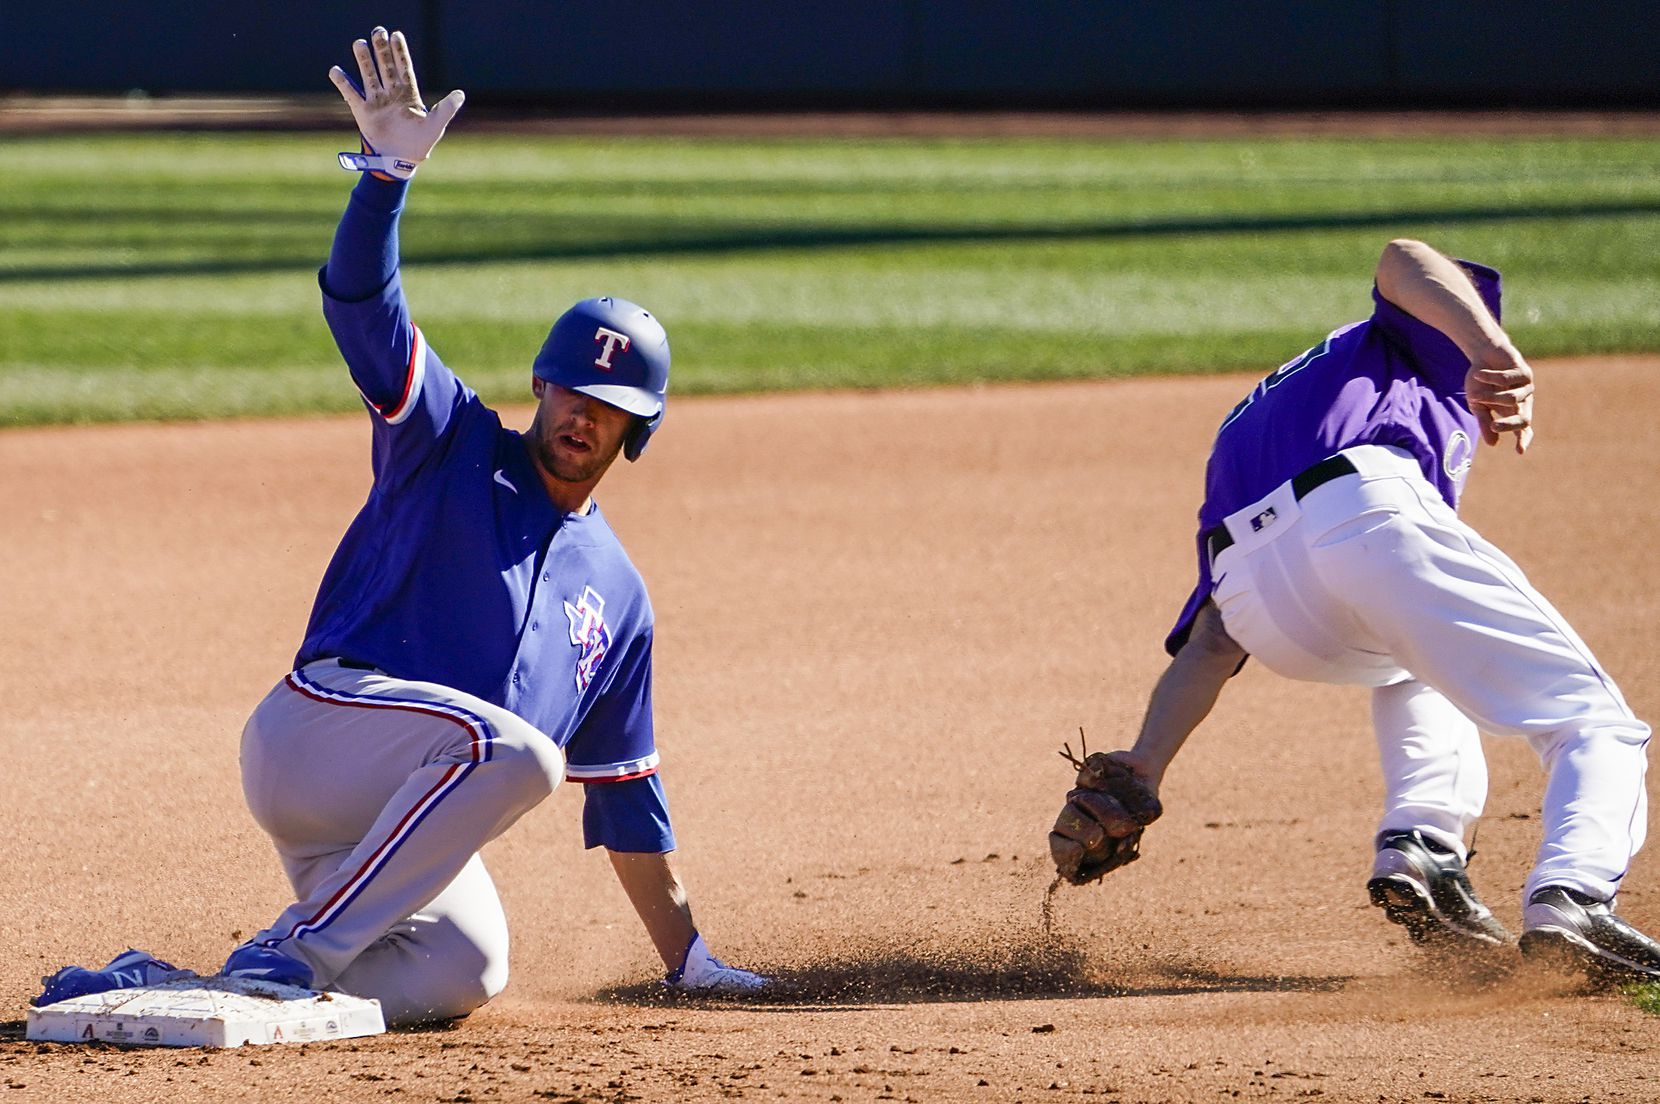 Texas Rangers infielder Eli White slides past the tag of Colorado Rockies second baseman Kelby Tomlinson to steal second base during the seventh inning of a spring training game at Salt River Fields at Talking Stick on Wednesday, Feb. 26, 2020, in Scottsdale, Ariz.